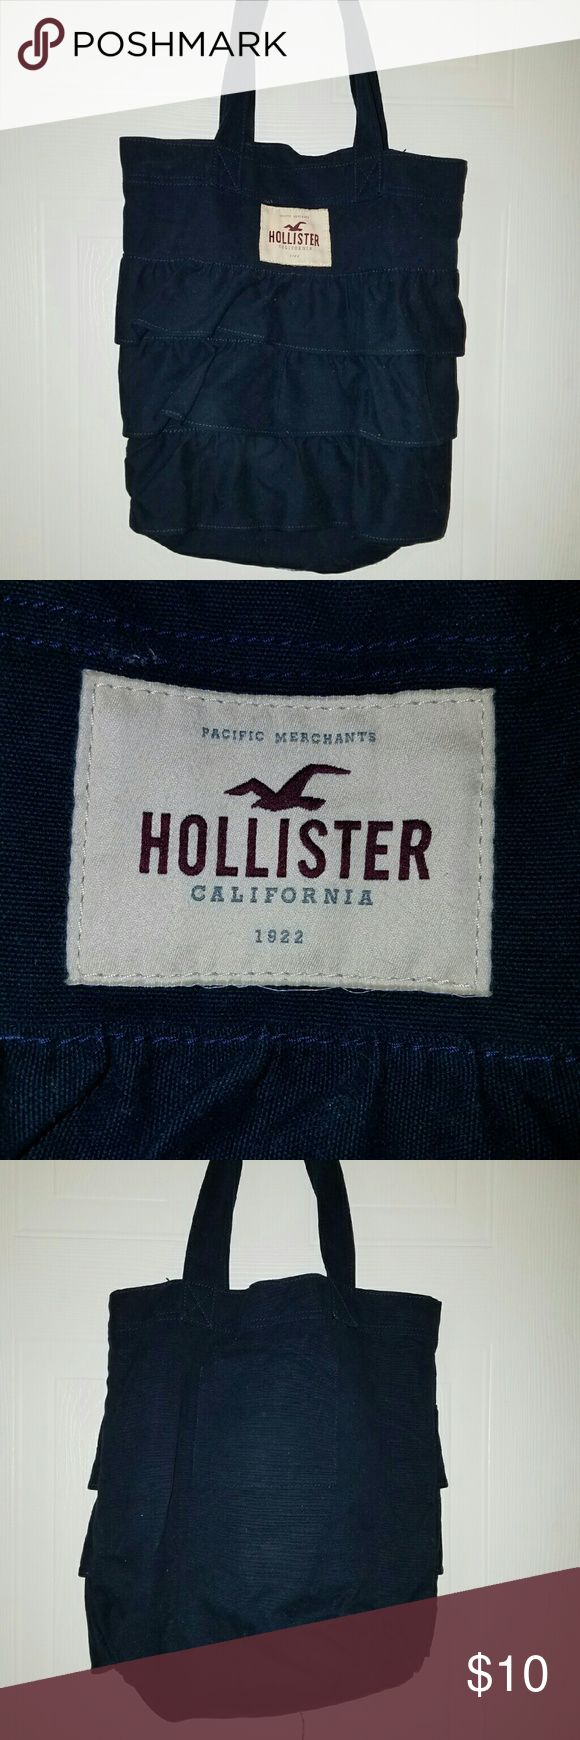 Hollister Tote Navy blue, sturdy denim like material total bag with ruffles in front. Hollister Bags Totes